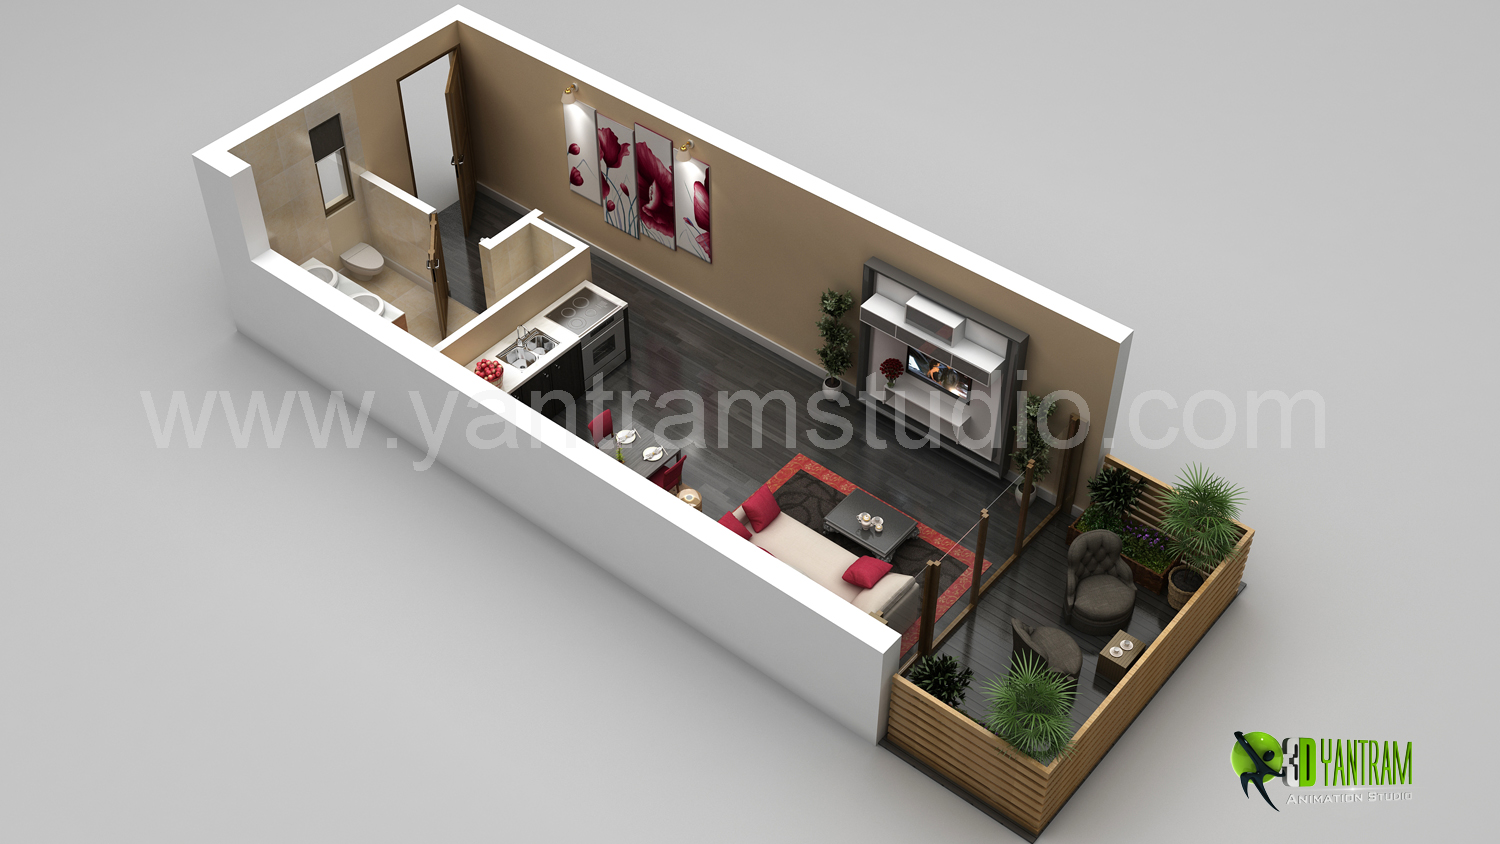 3d Small Home Floor Plan Rendering Yantramstudio